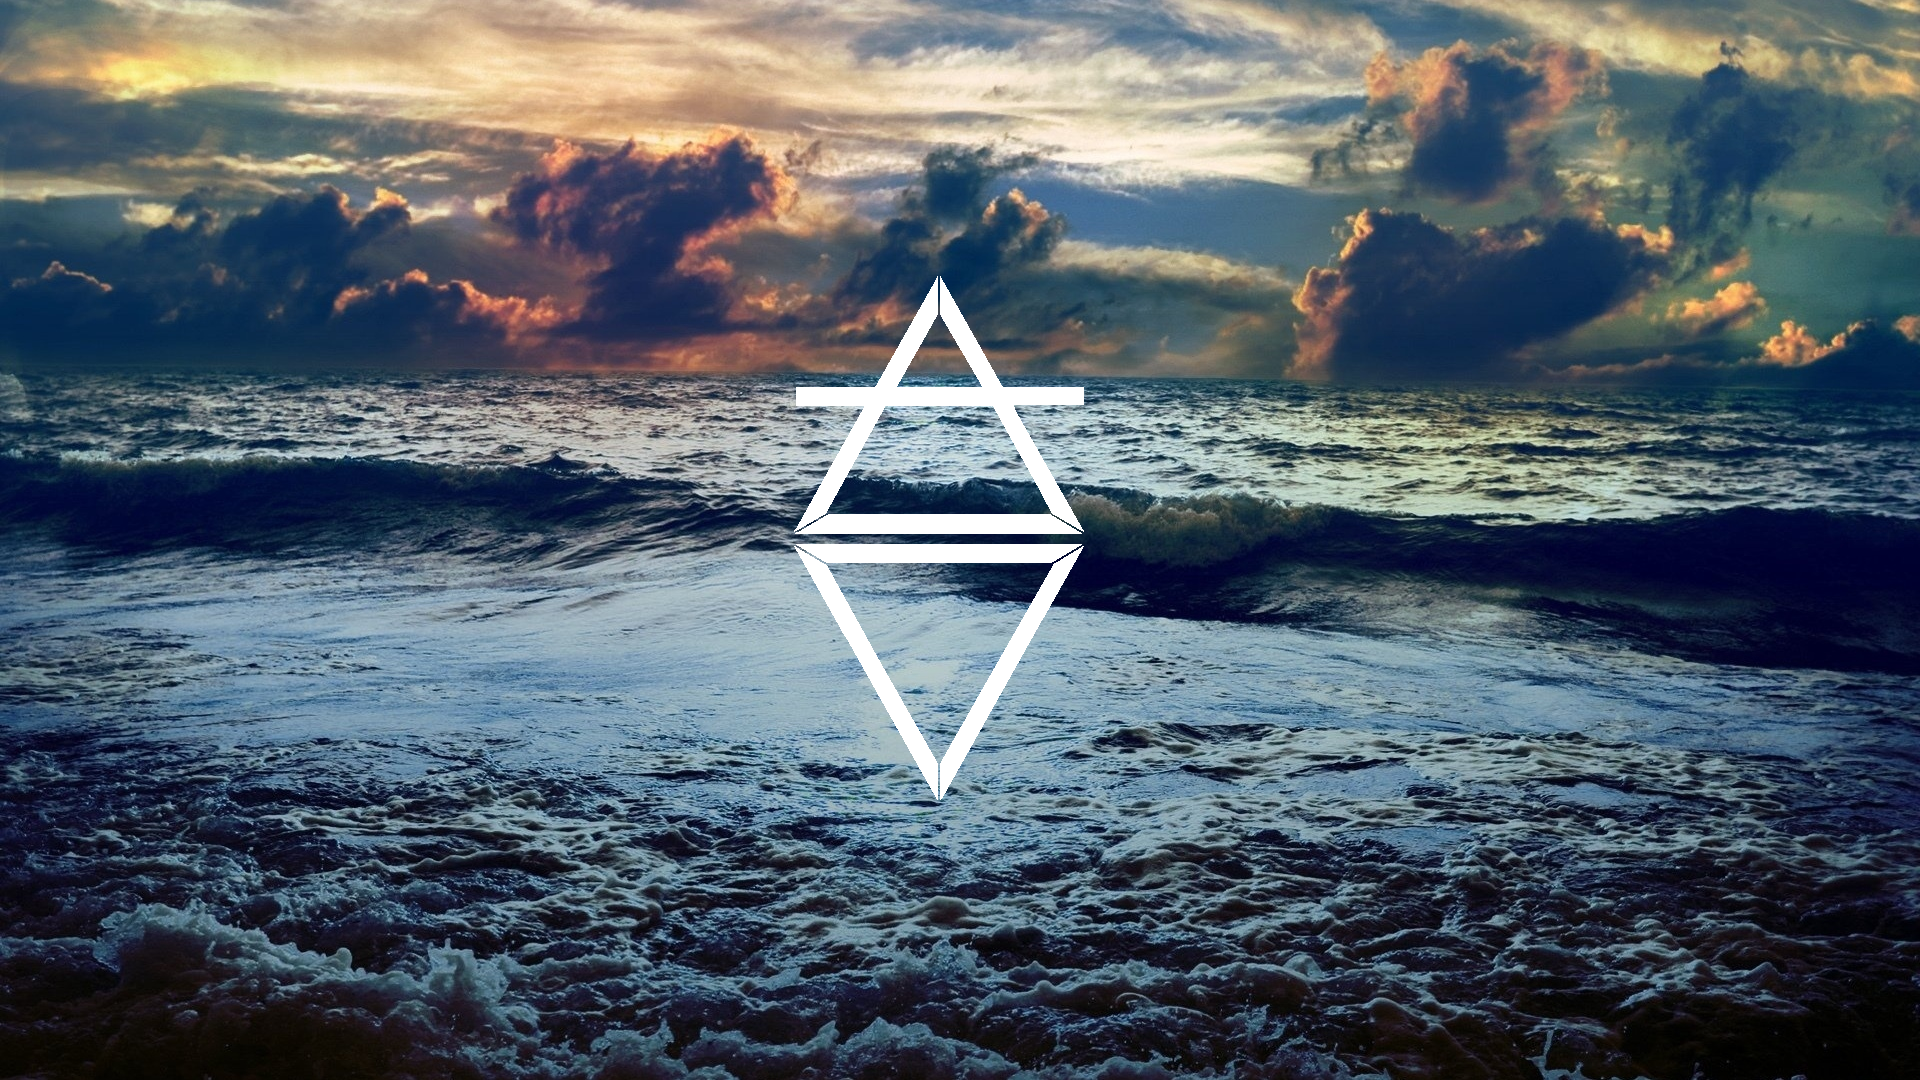 This Is A Florence And The Machine Computer Wallpaper I Spontaneously Decided To Make And It Turned Out Really Well Landscape Ocean Photography Sea And Ocean